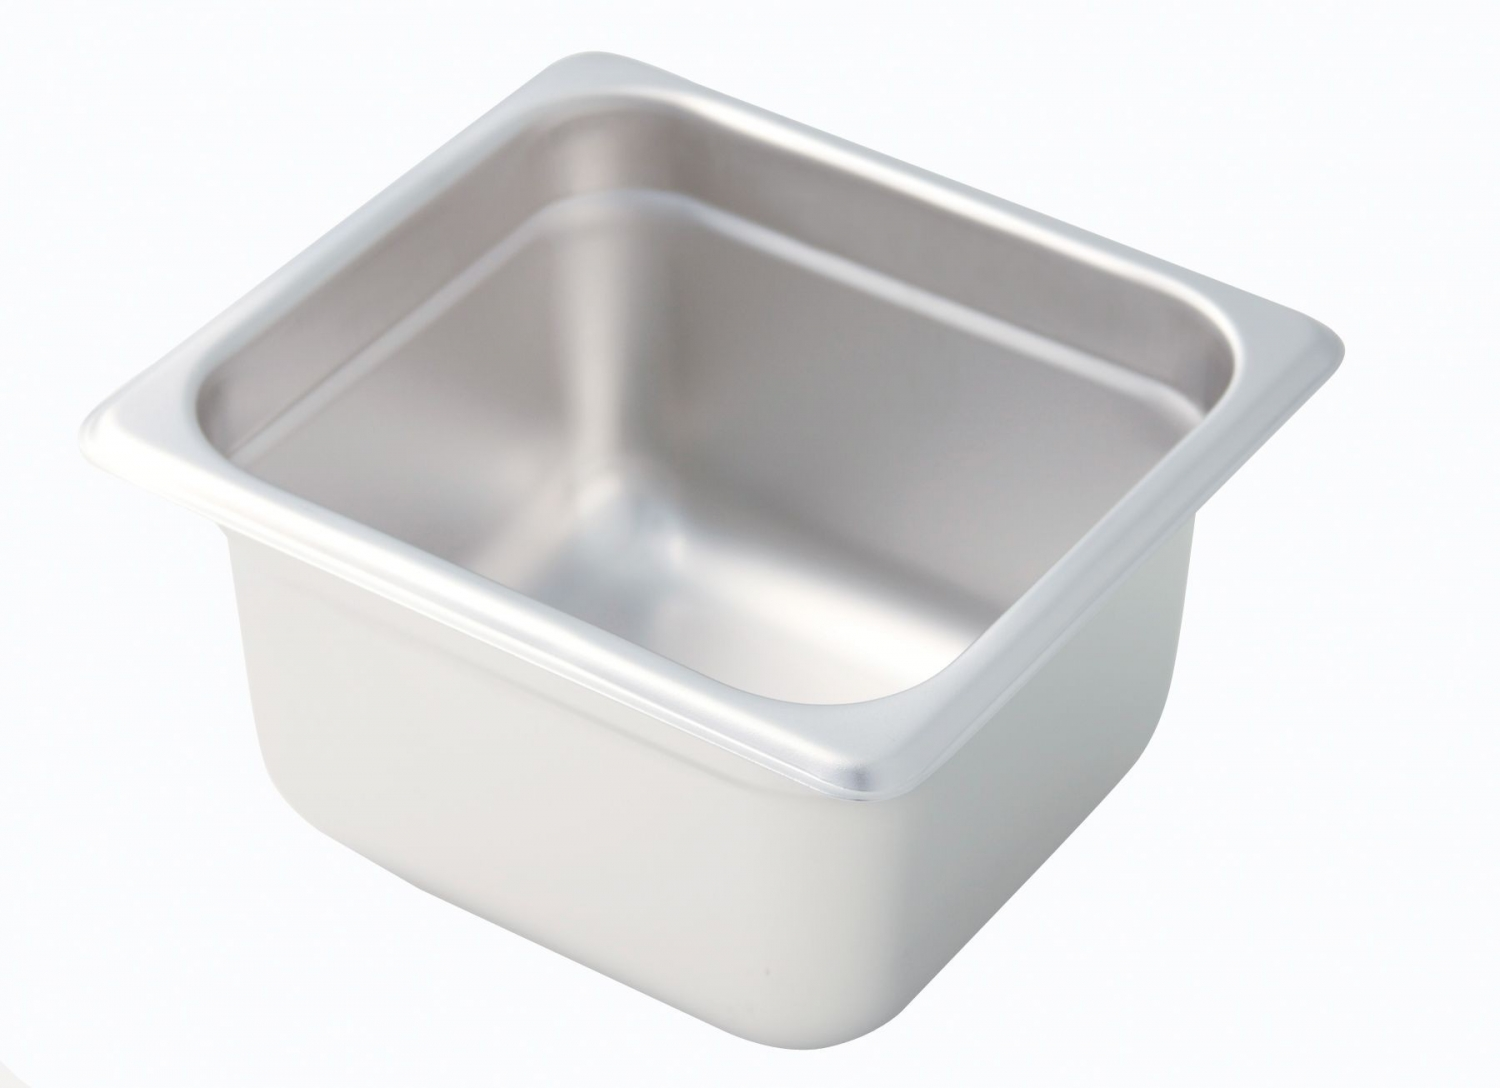 Johnson Rose 57604 1/6-Size Steam Table Pan  2 Qt. Capacity